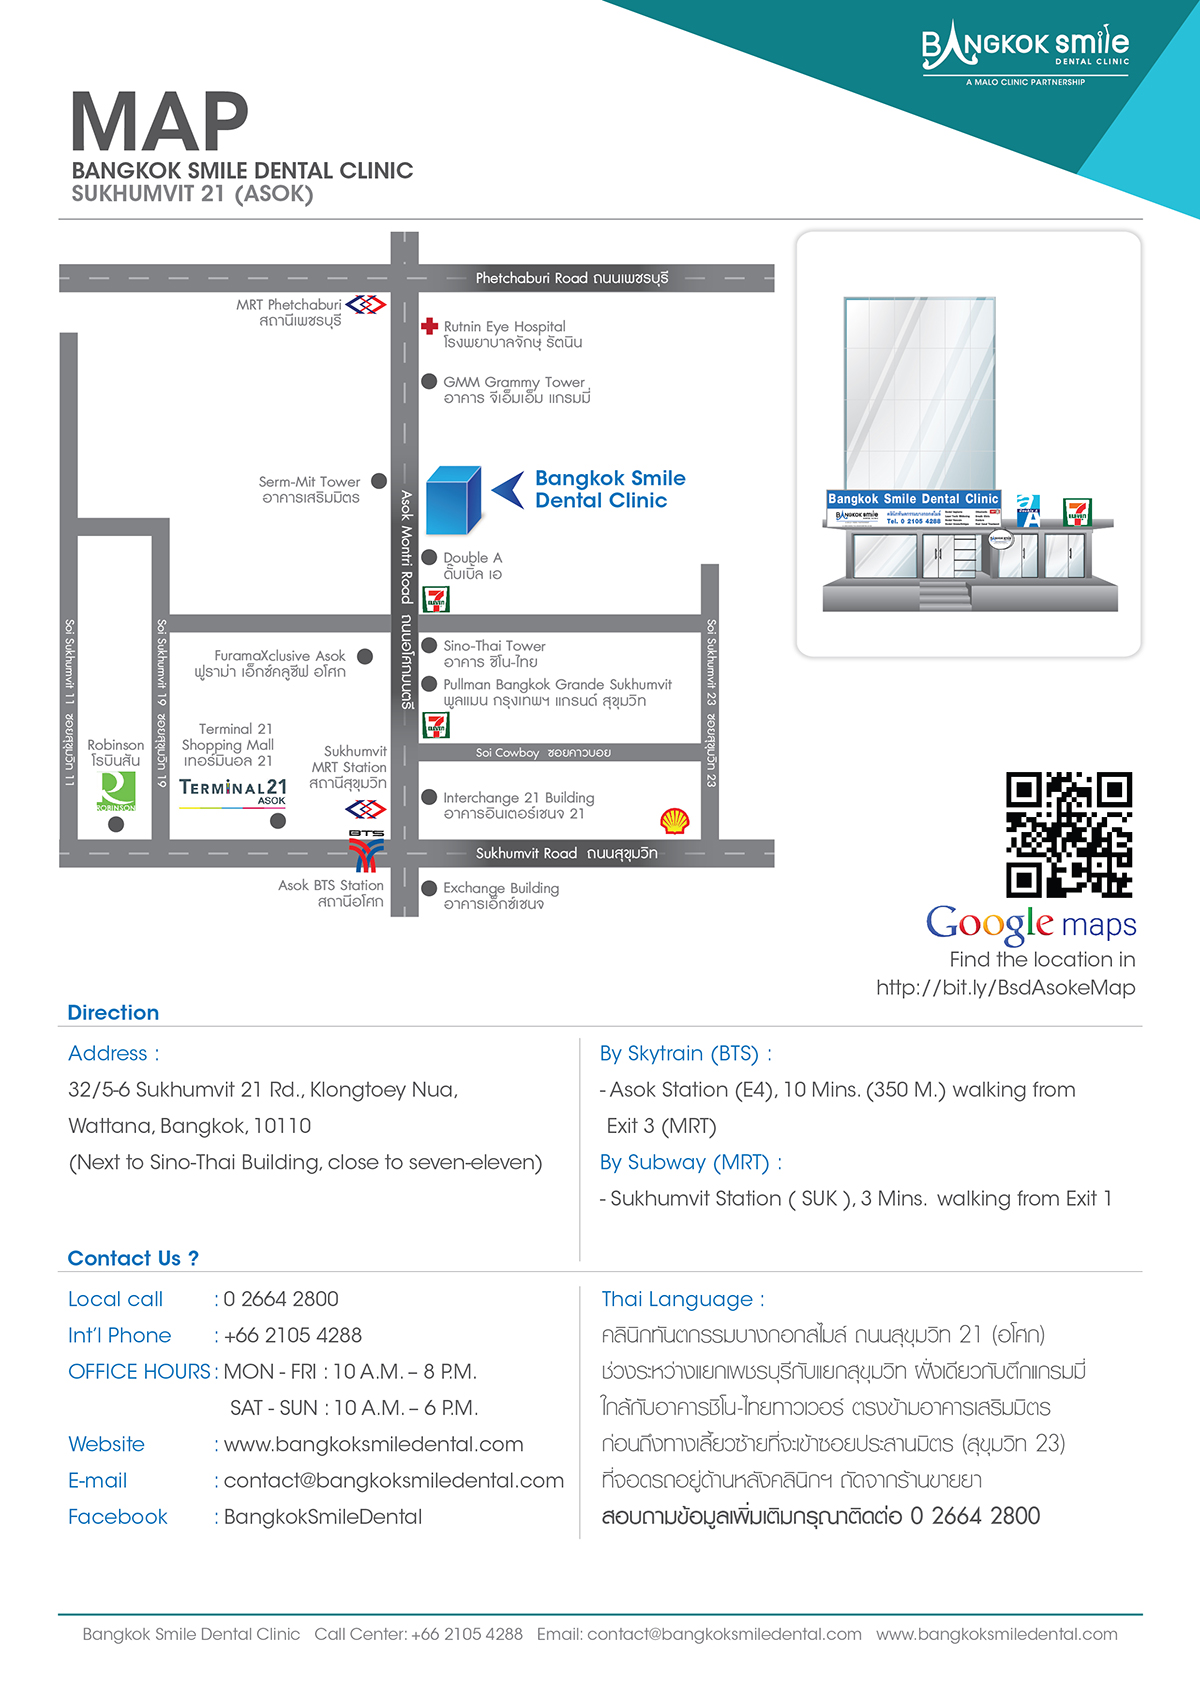 http://thaicosmeticdental.com/images/pj-map2.png